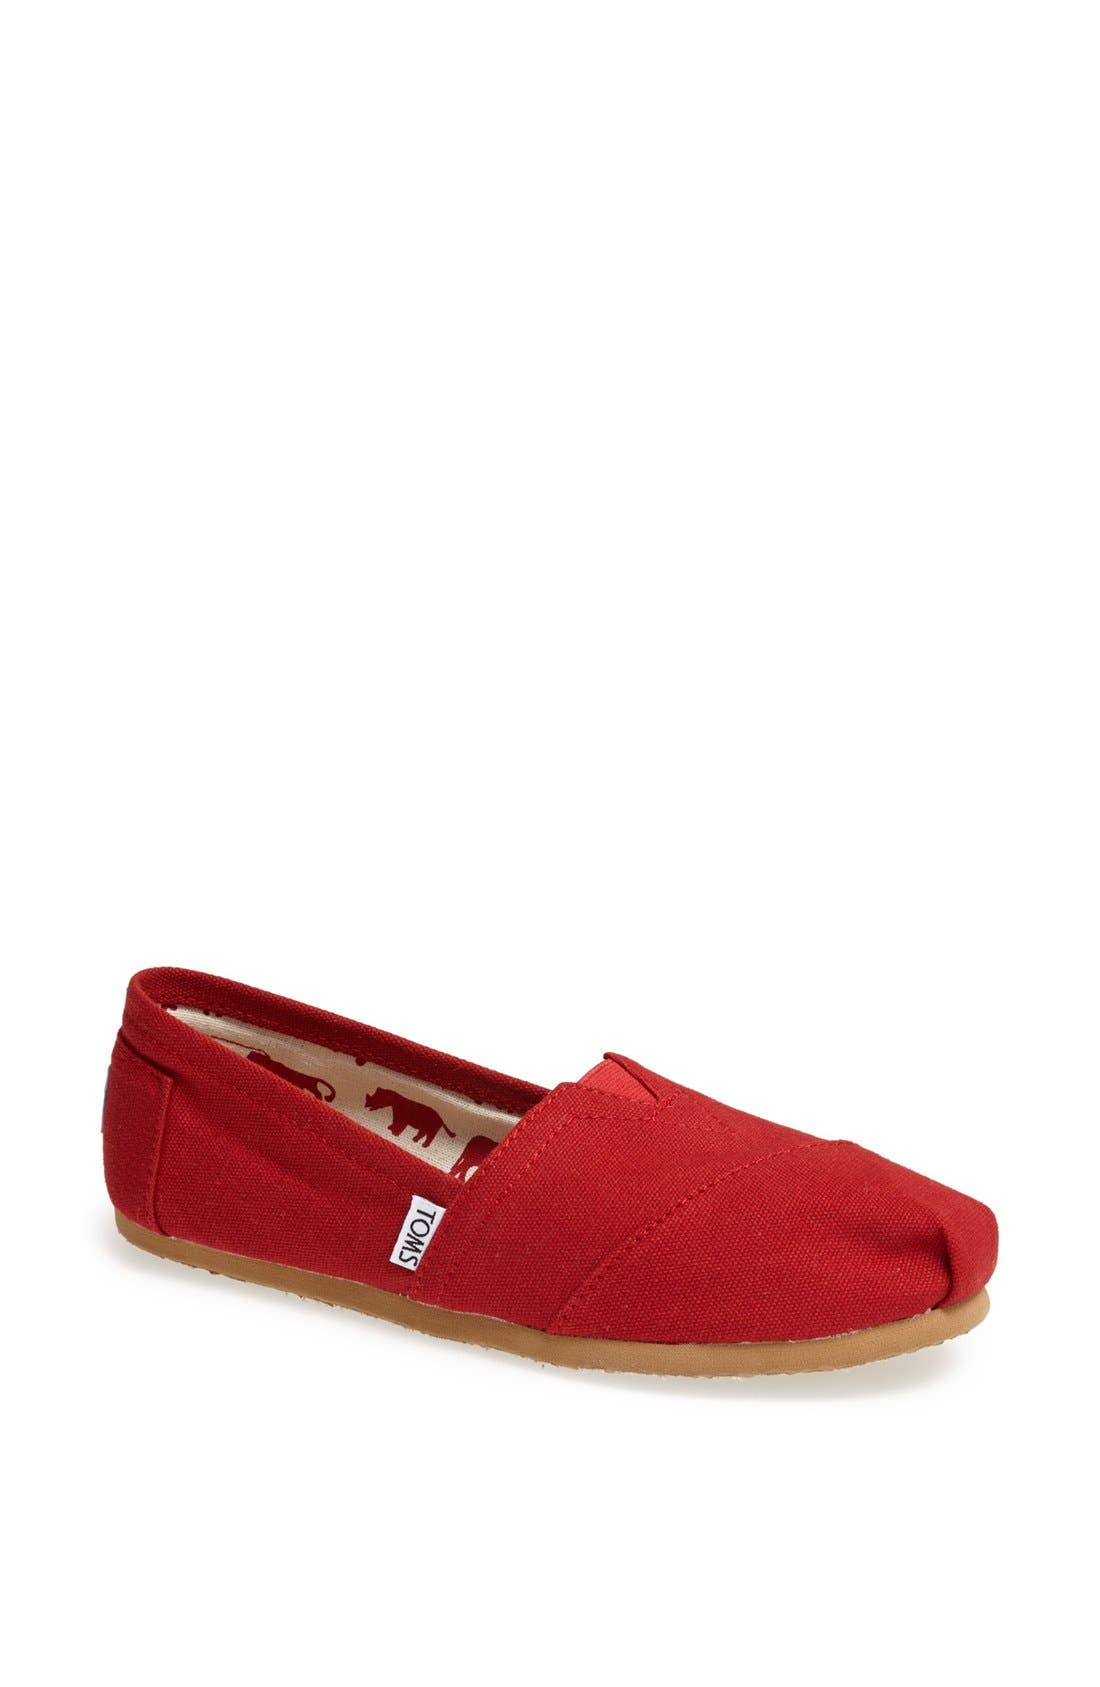 TOMS, Classic Canvas Slip-On, Main thumbnail 1, color, RED